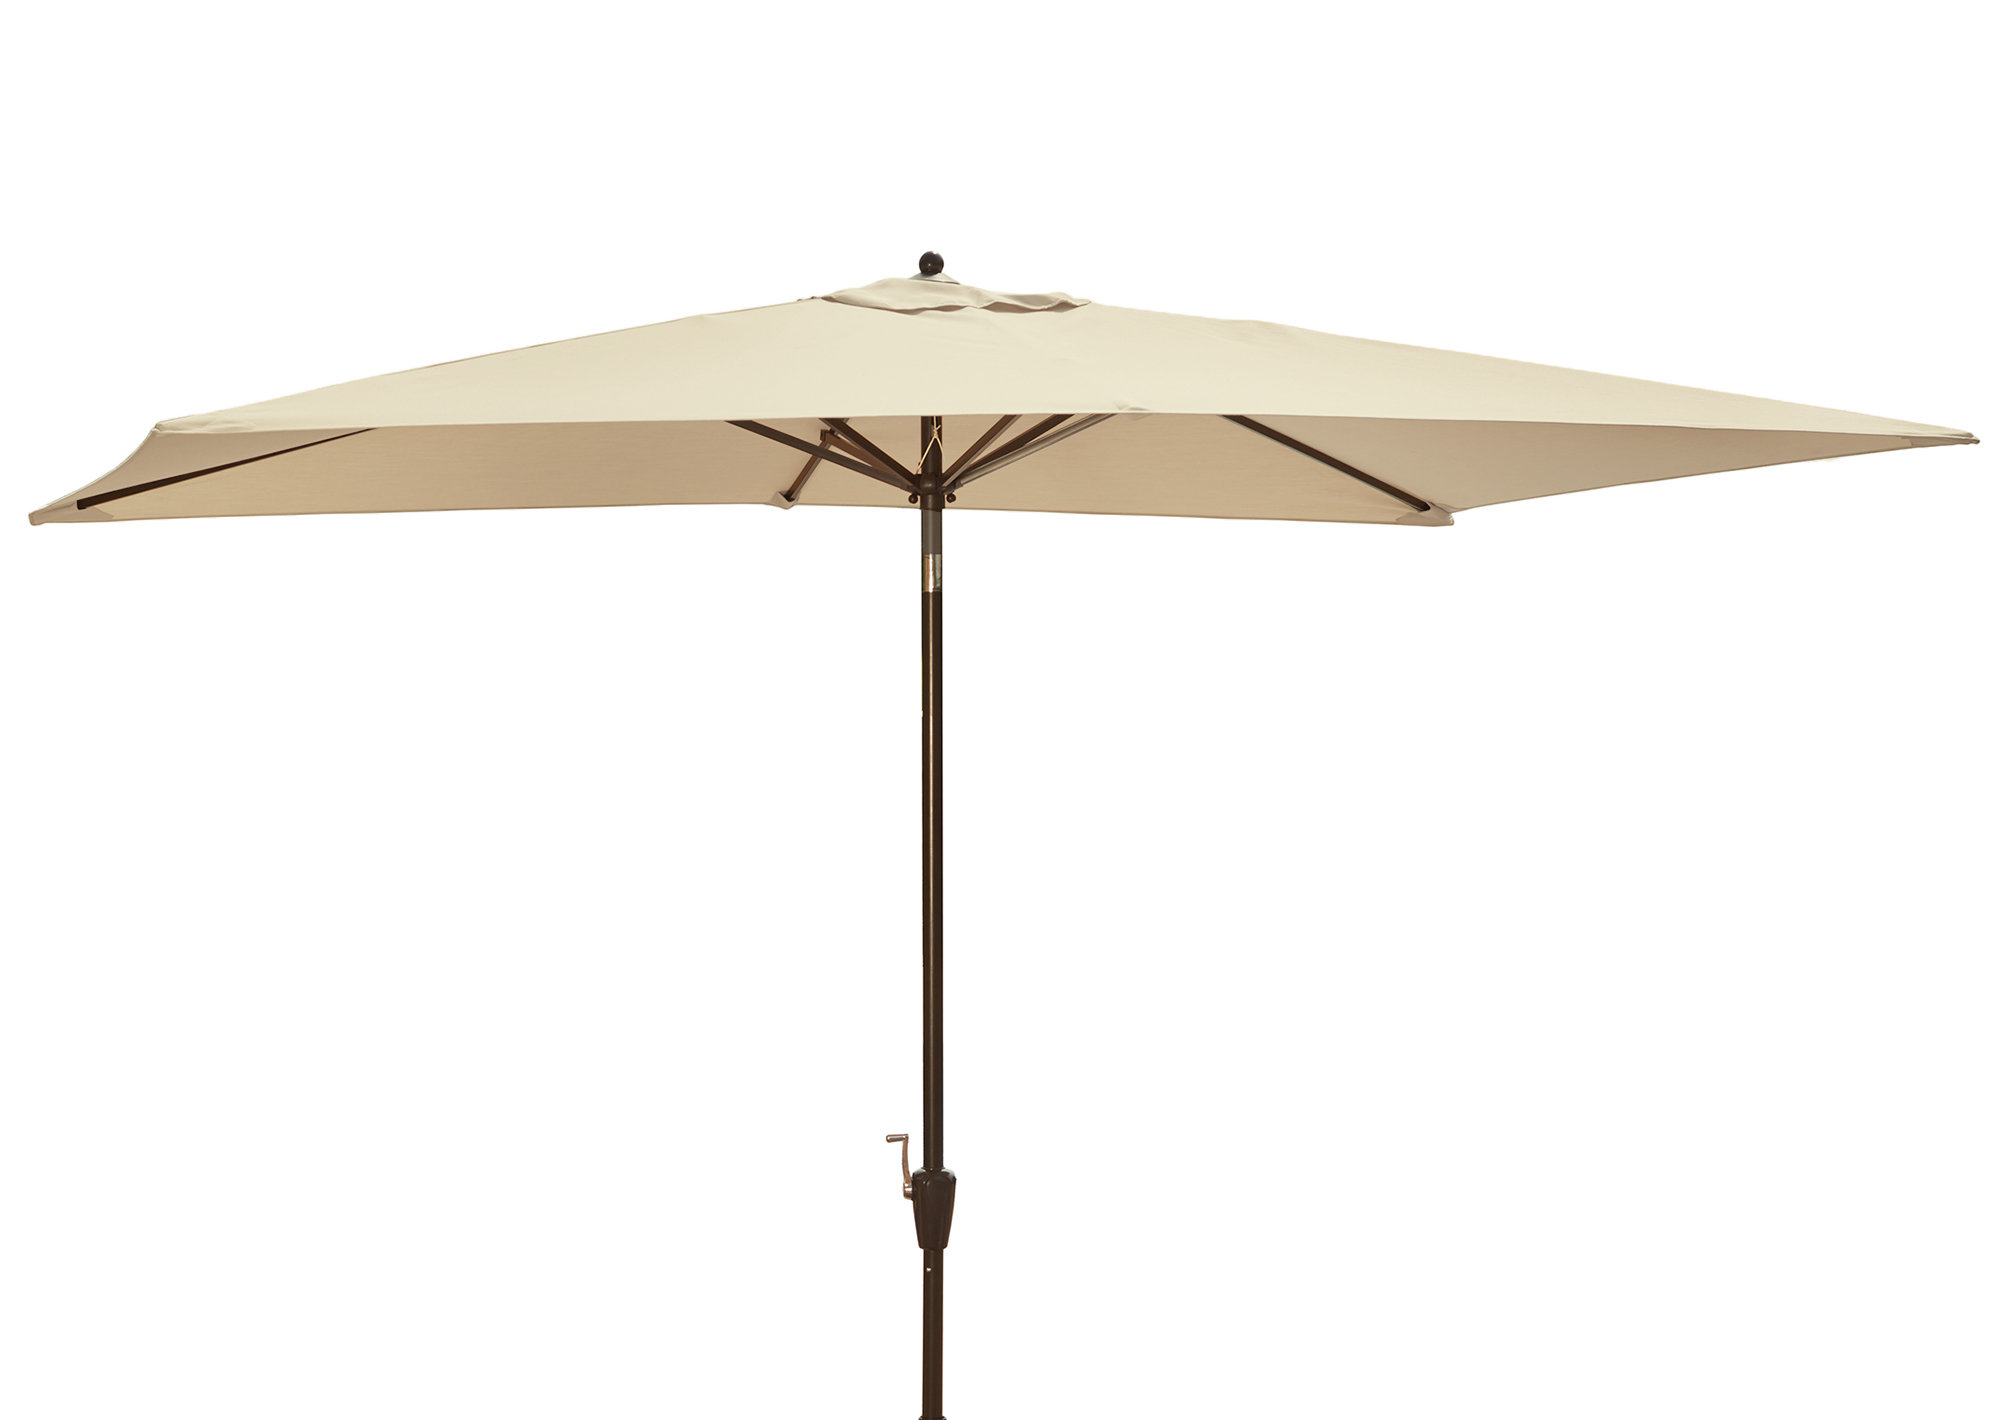 Griselda Solar Lighted  Rectangular Market Umbrellas Within Preferred Darby Home Co Dena 10' X 6.5' Rectangular Market Umbrella & Reviews (Gallery 6 of 20)